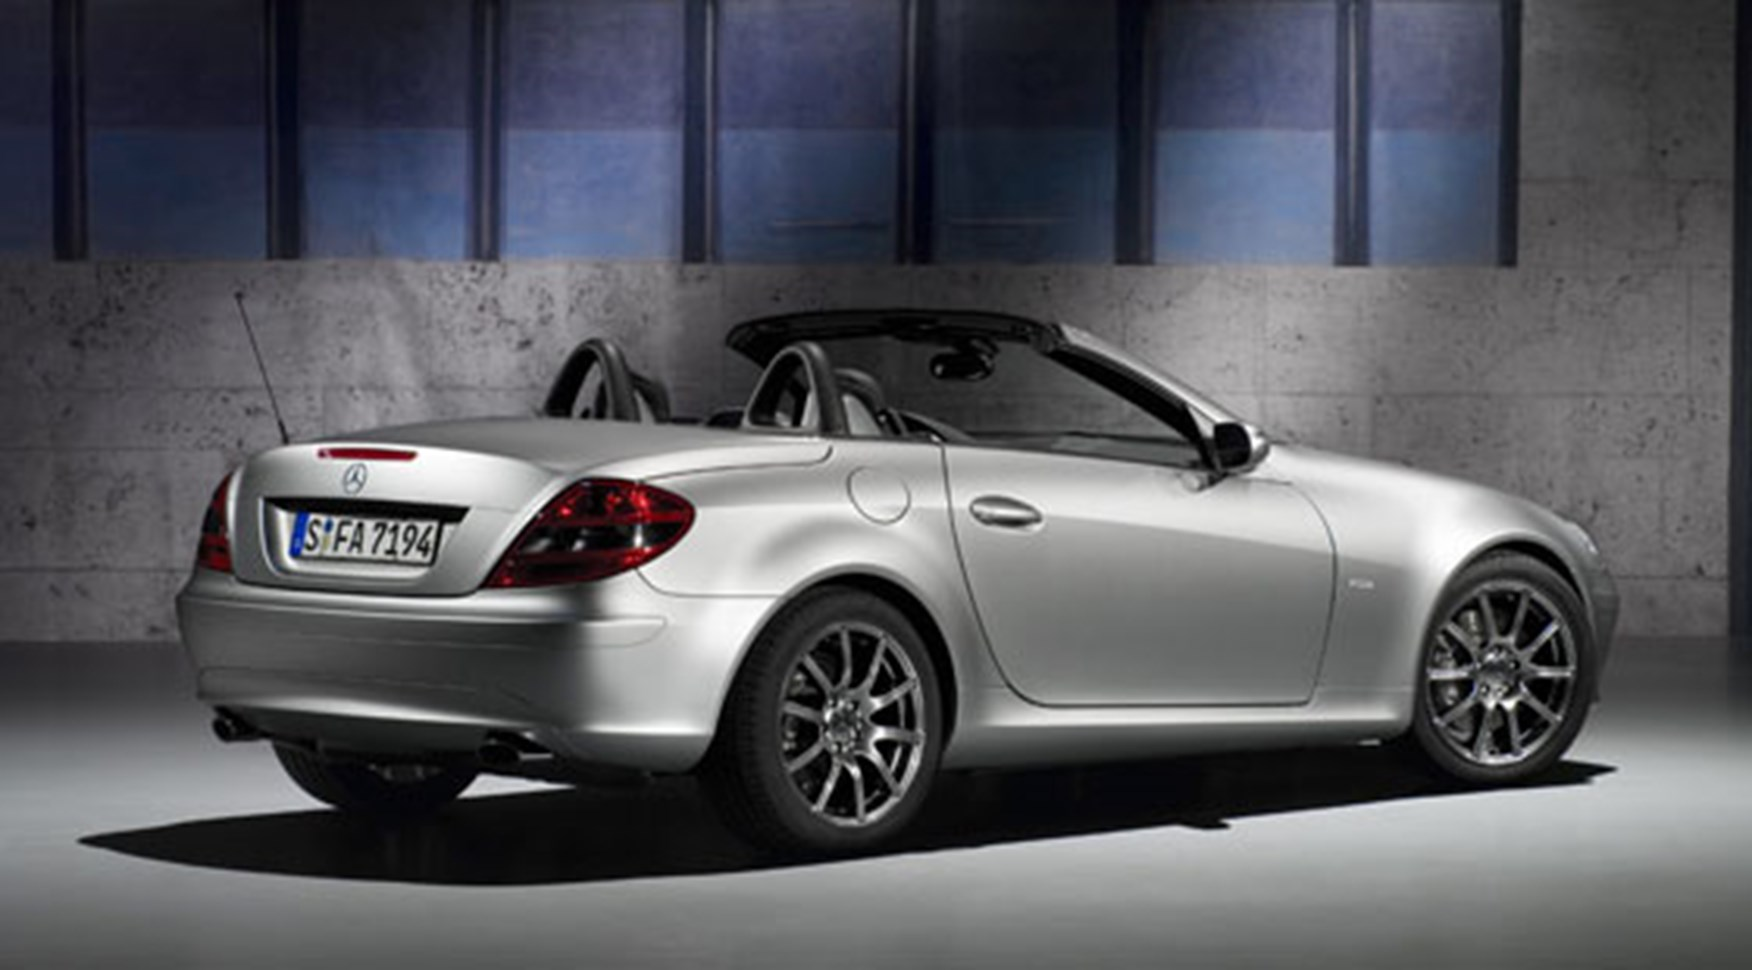 Mercedes Slk200 Edition 10 2007 Review By Car Magazine